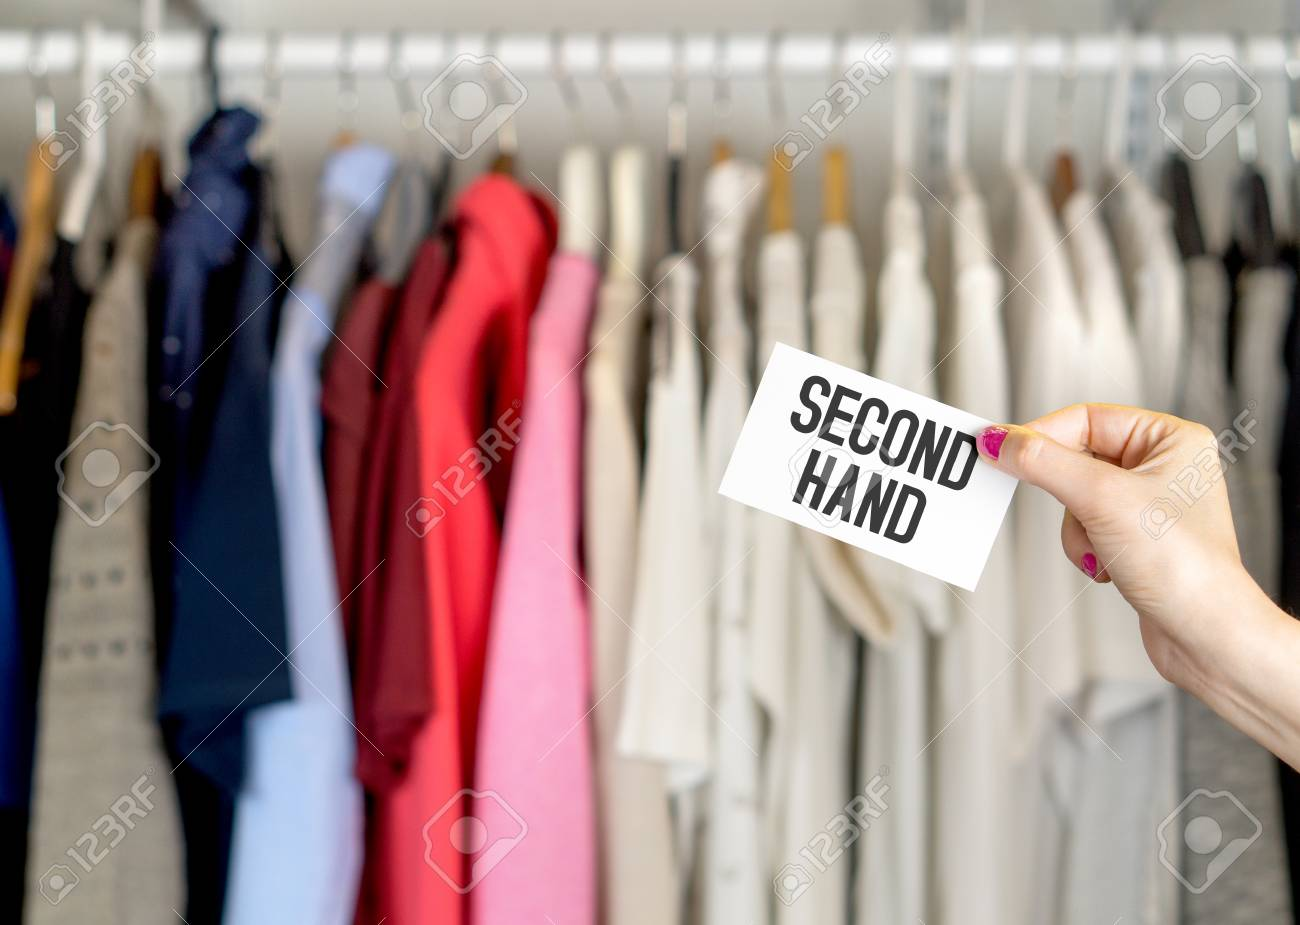 Second Hand Clothing Shop. Stock Photo, Picture And Royalty Free Image.  Image 95505072.